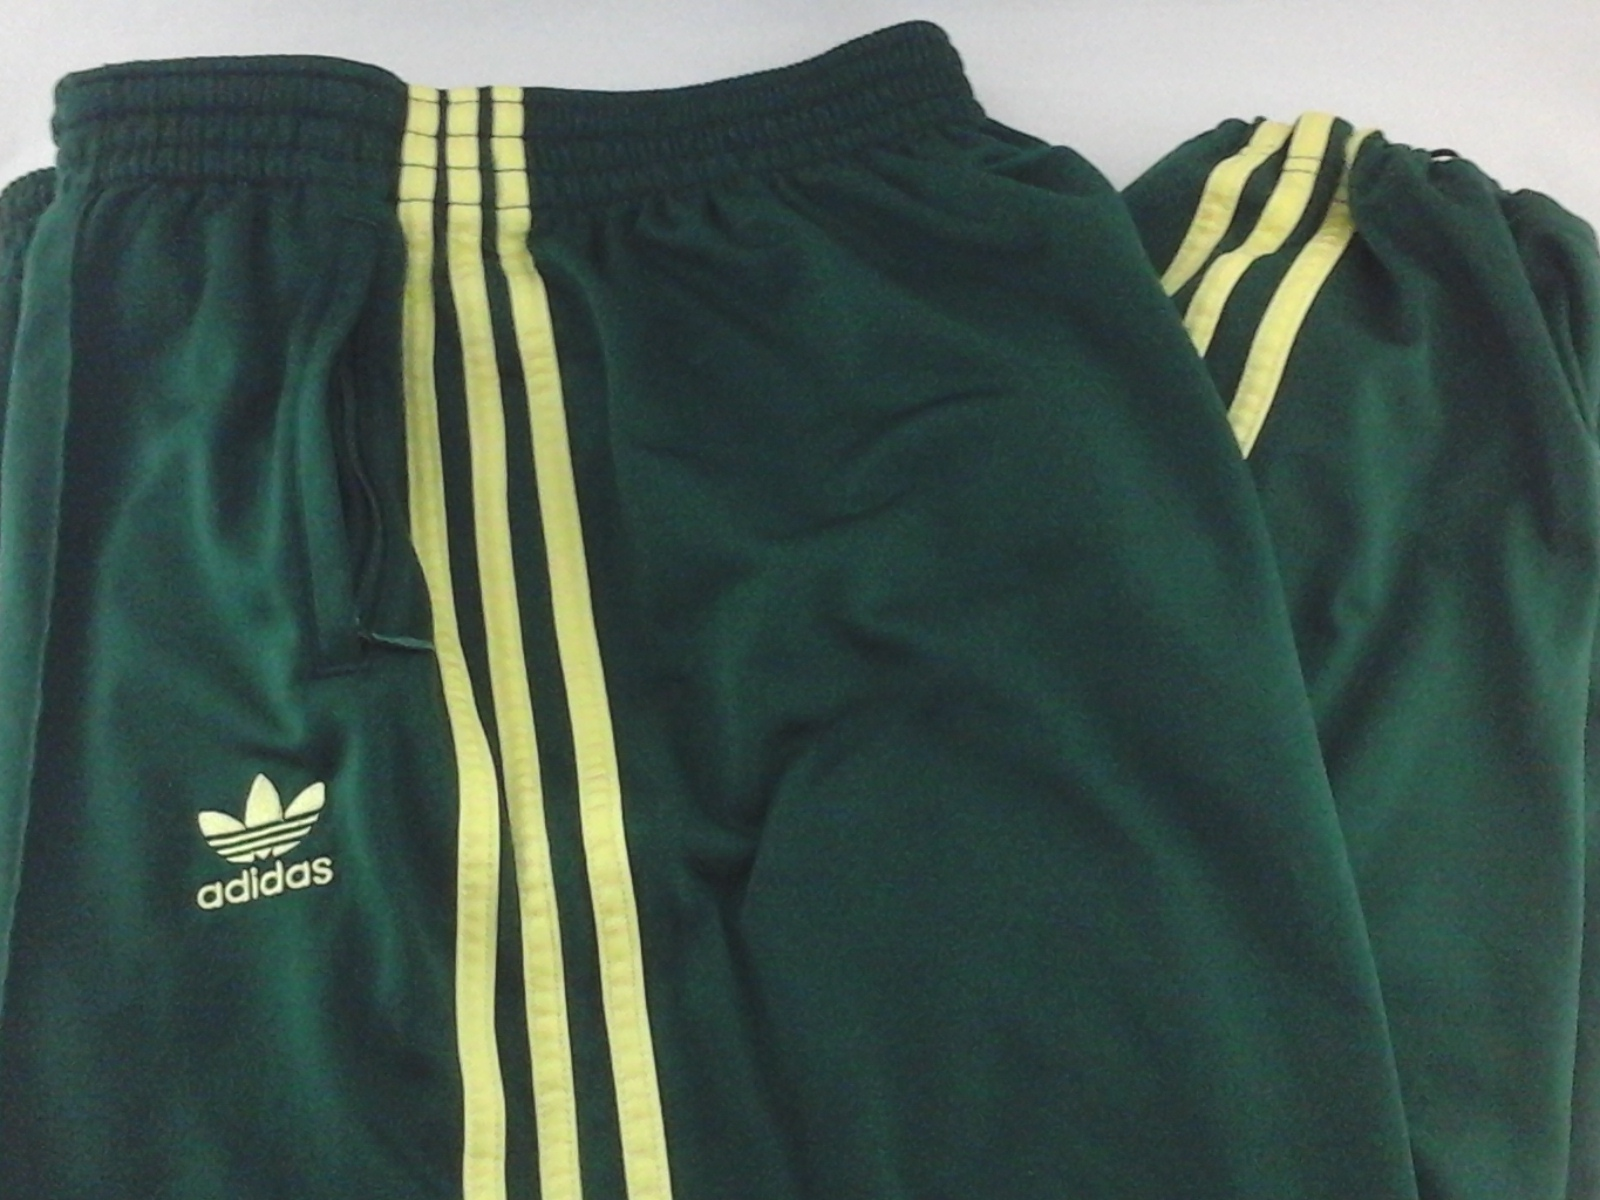 Details about ADIDAS Track Pants Retro Green Yellow Stripes Embroidered Trefoil Mens L RARE